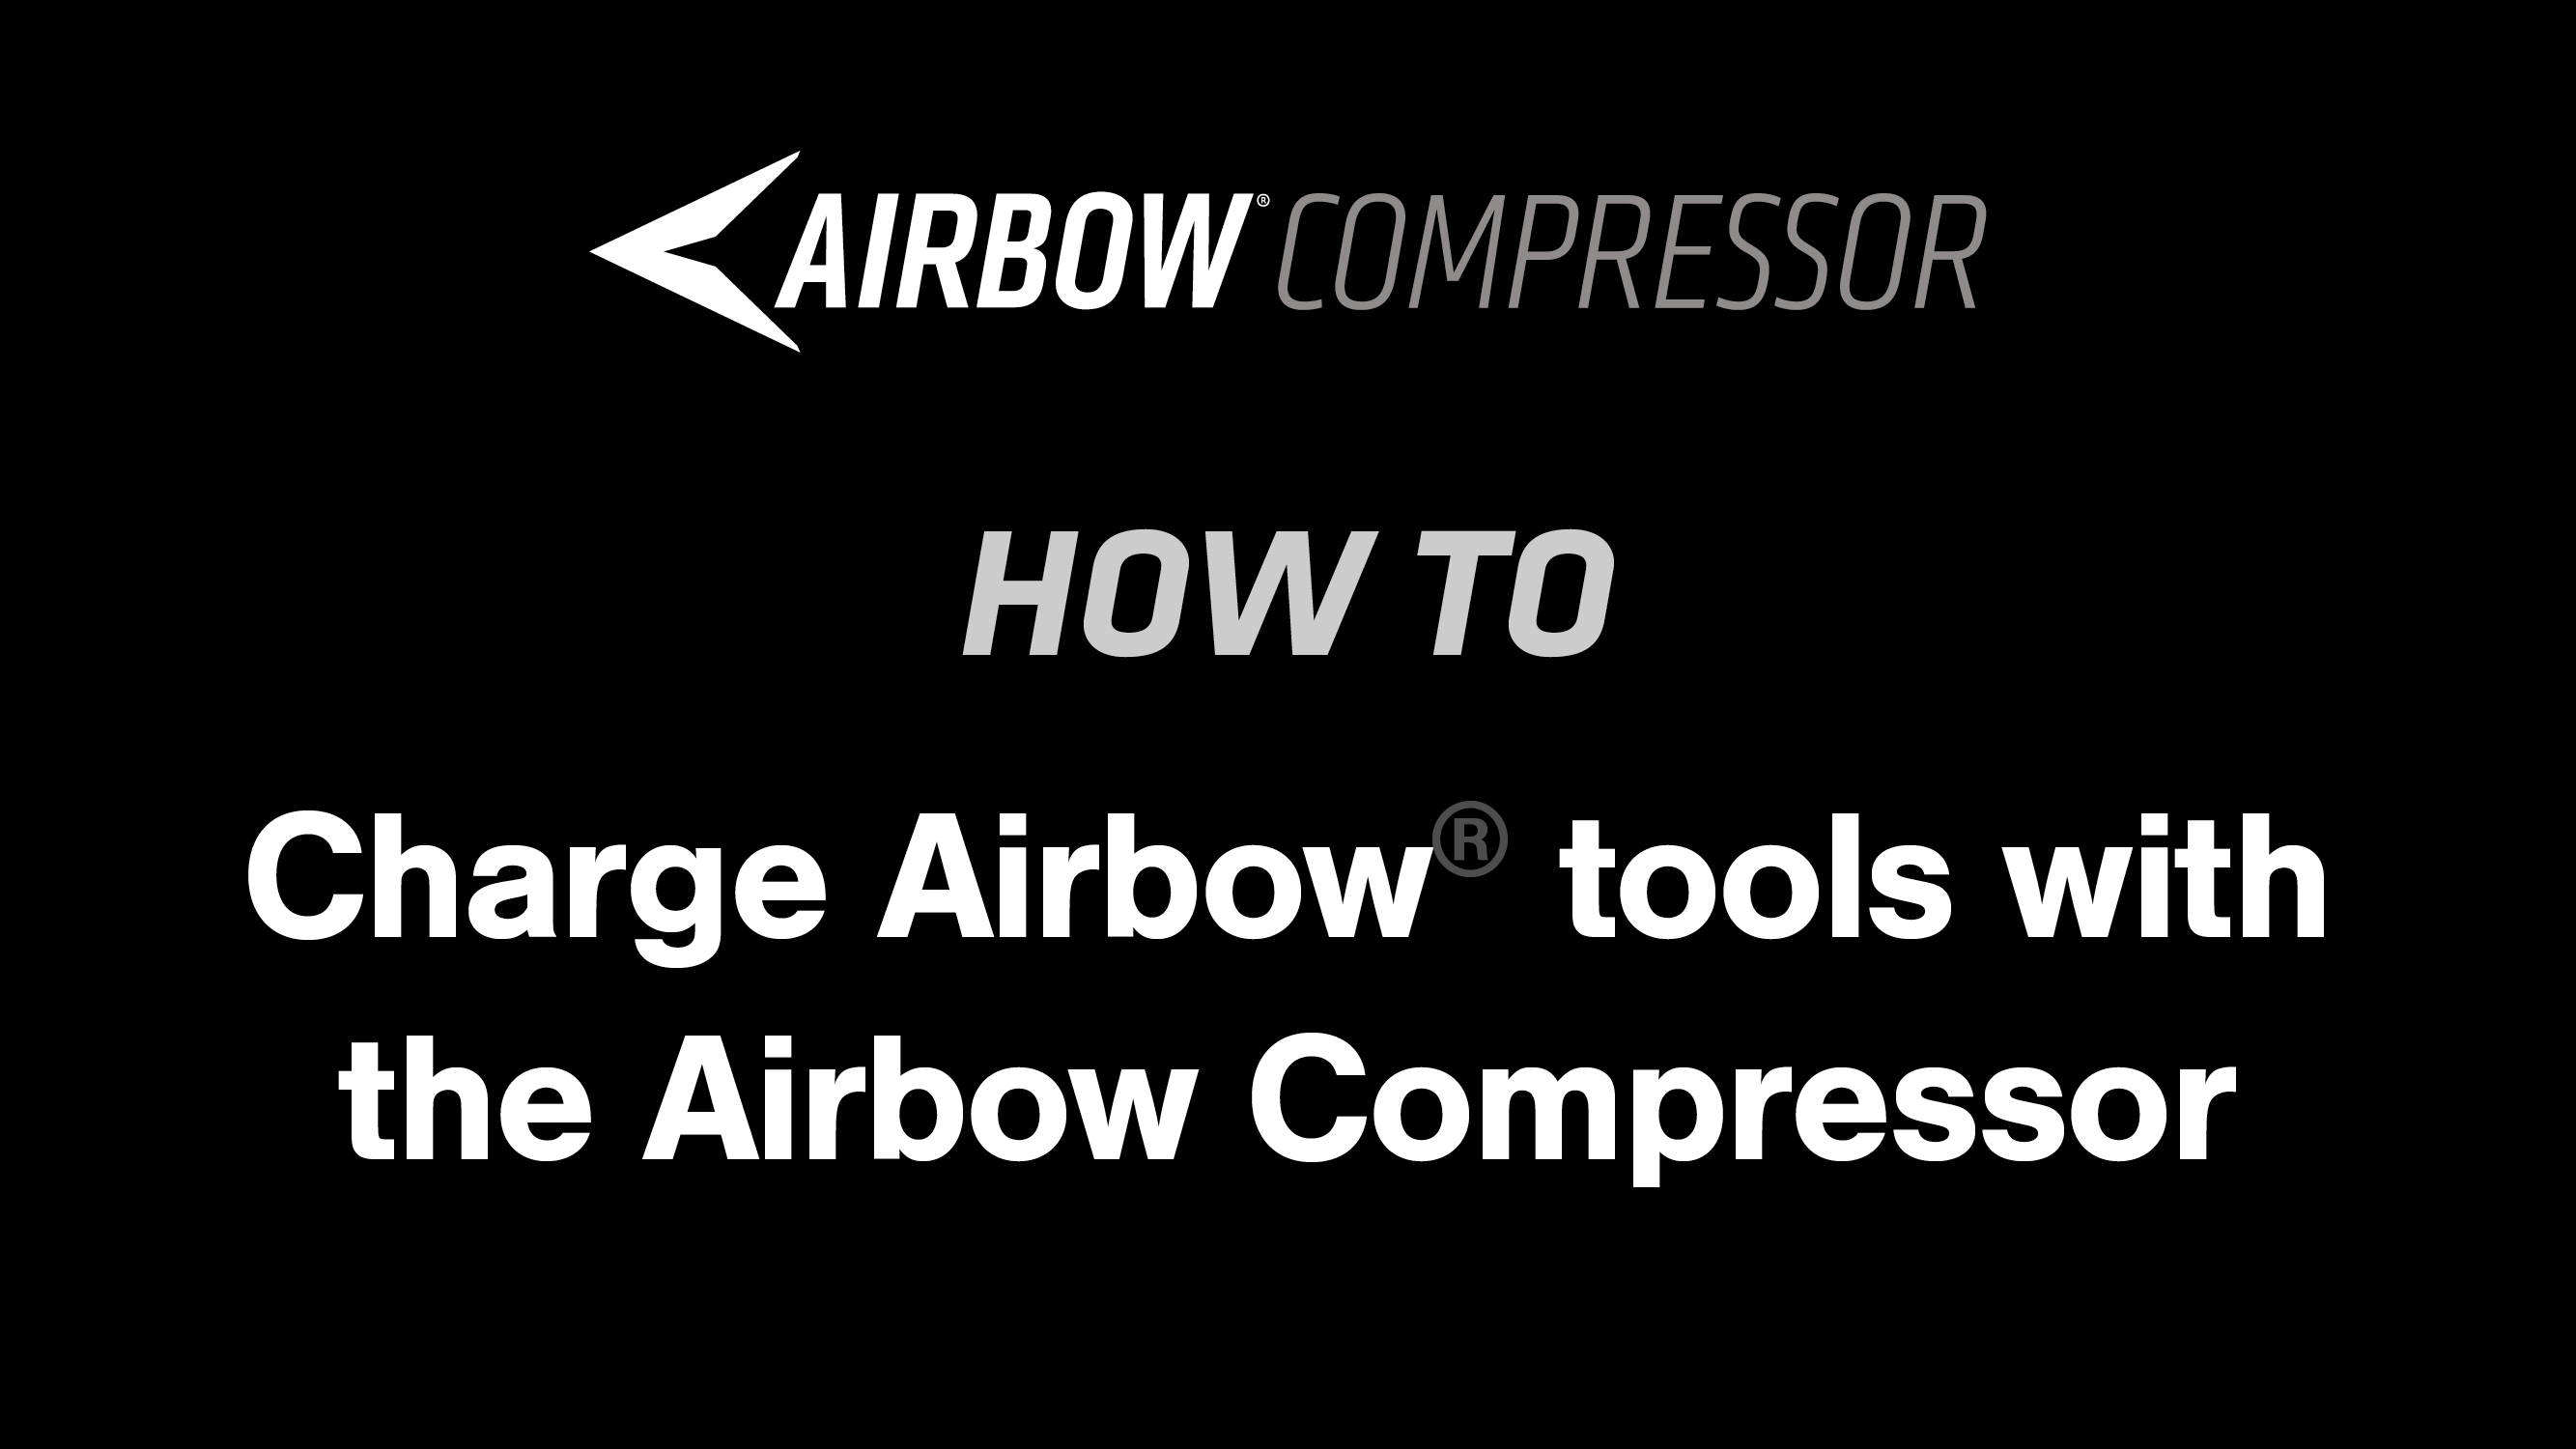 How to: Charge Airbow® tools with the Airbow Compressor